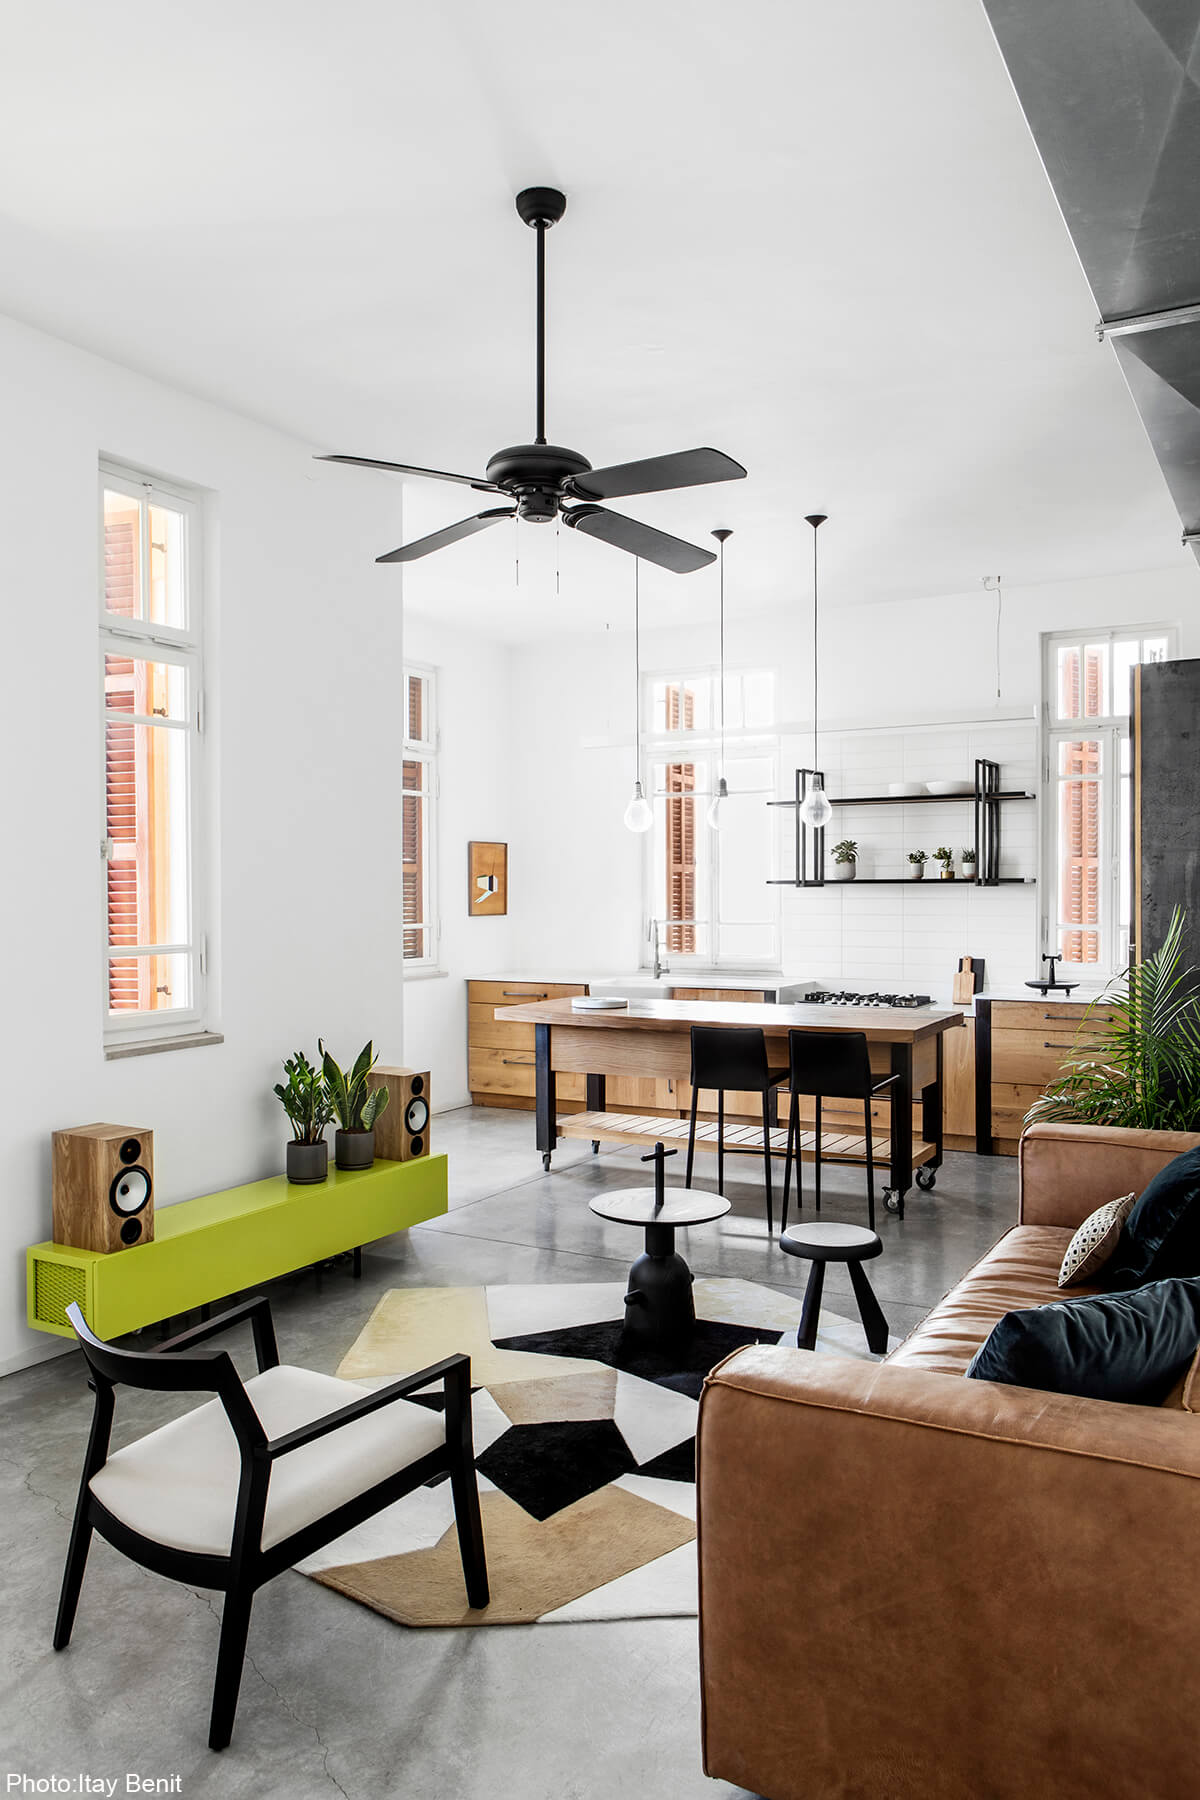 Interior design of modern apartment in an old preserved building next to the Carmel market. In the most hectic area in Tel Aviv this home was meant to serve as a serene haven. Clean lines, concrete floors and bare materials compliment the high ceiling and large wooden windows of the historic building, designed by Adi Mor Architect - Fineshmaker